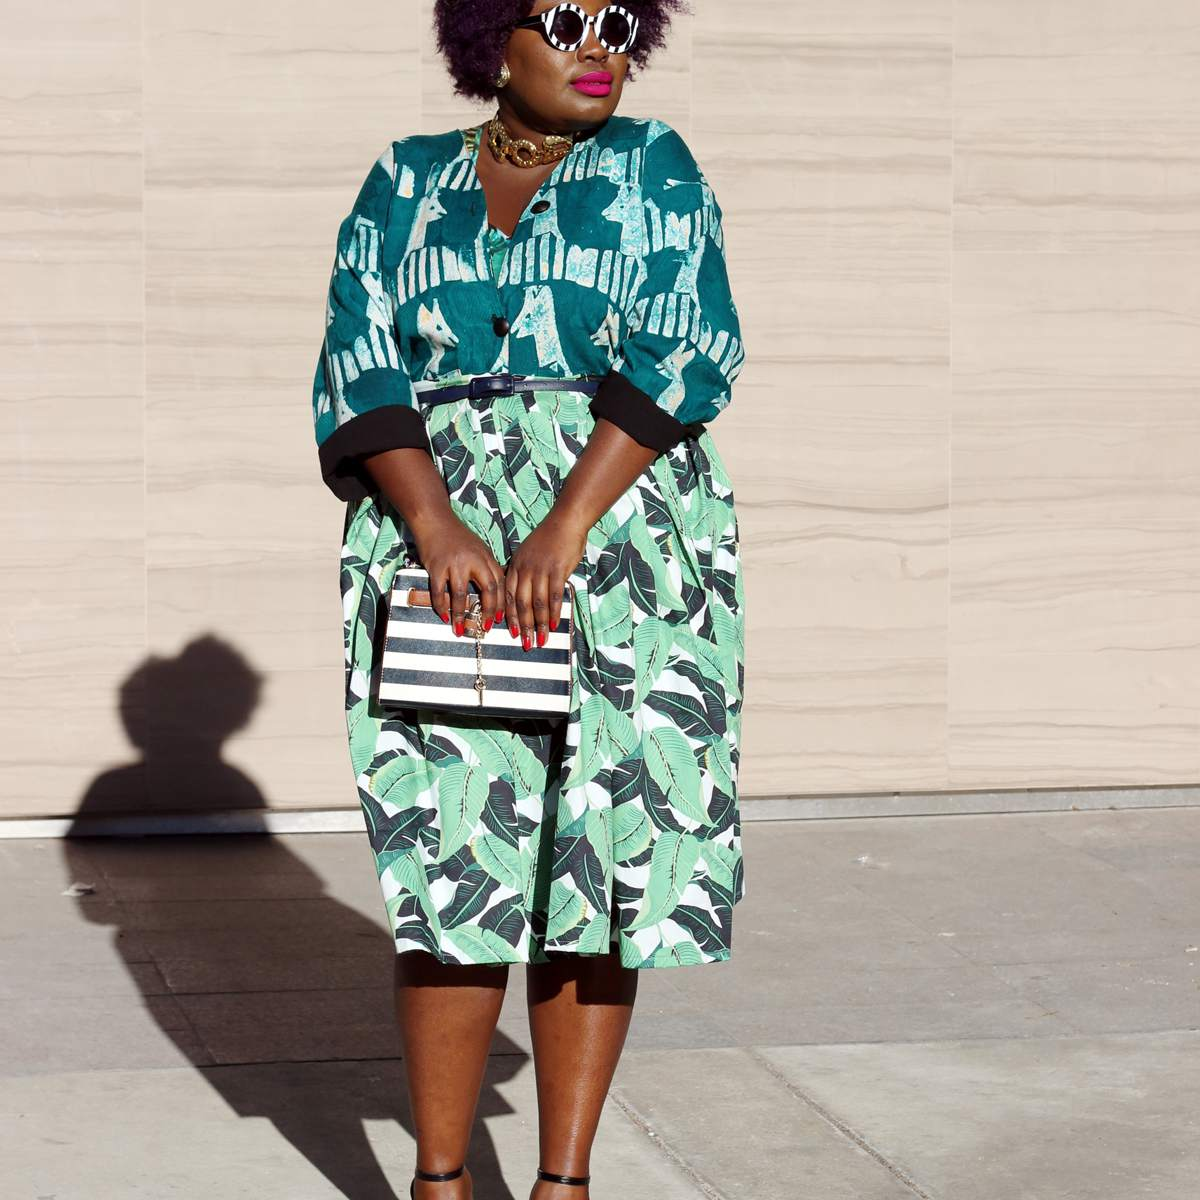 Woman in green printed summer dress